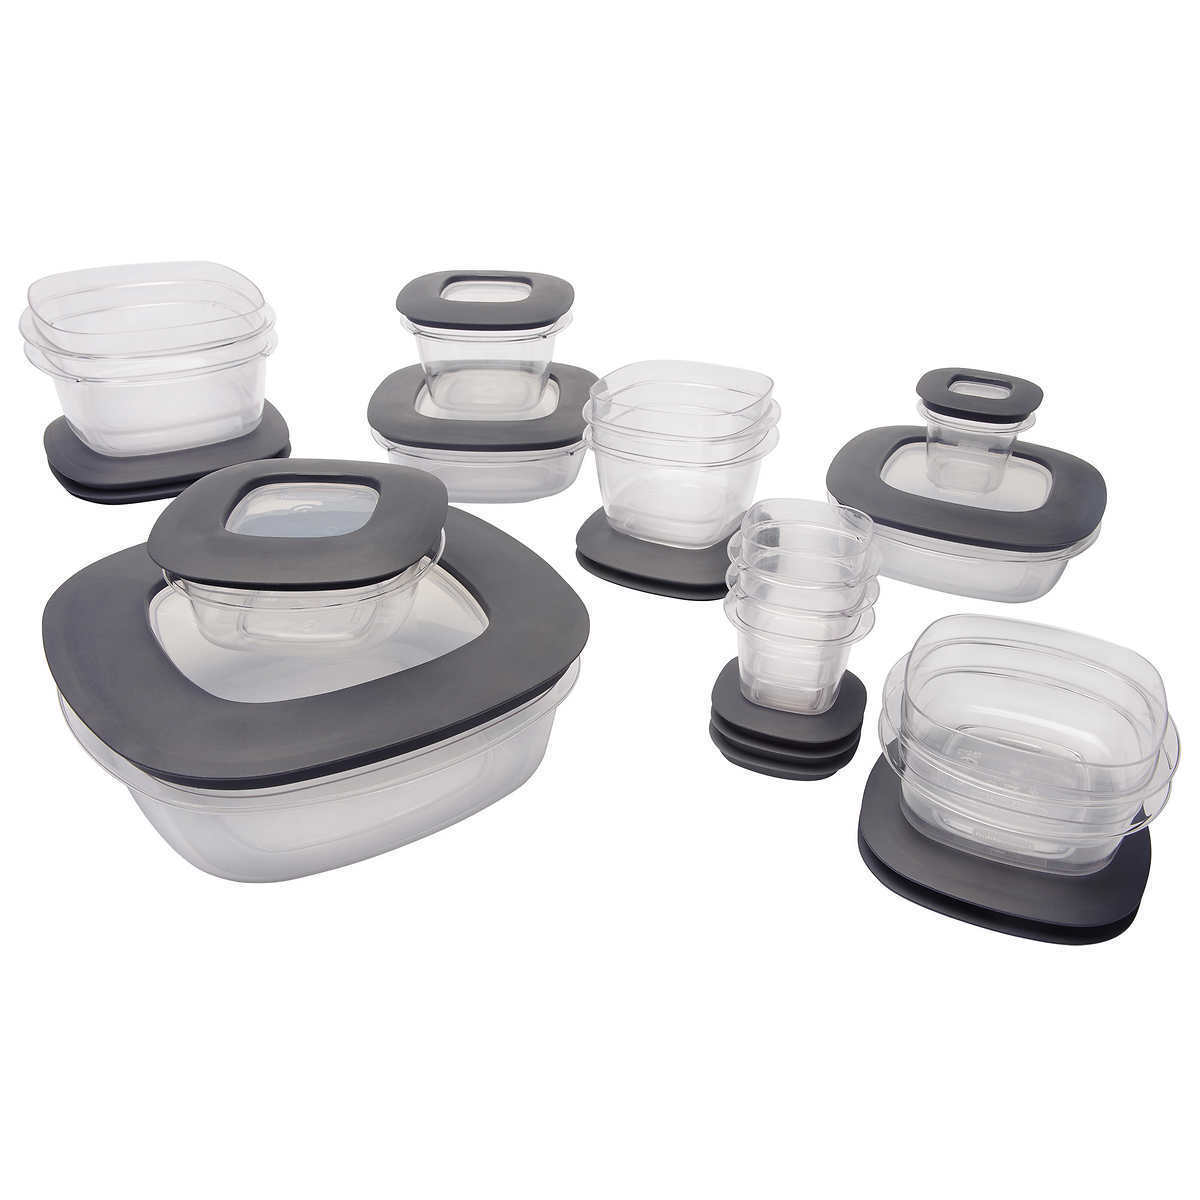 MADE IN USA Rubbermaid Premier 30 Piece Food Storage Set  Flex & Seal™ BPA FREE 1